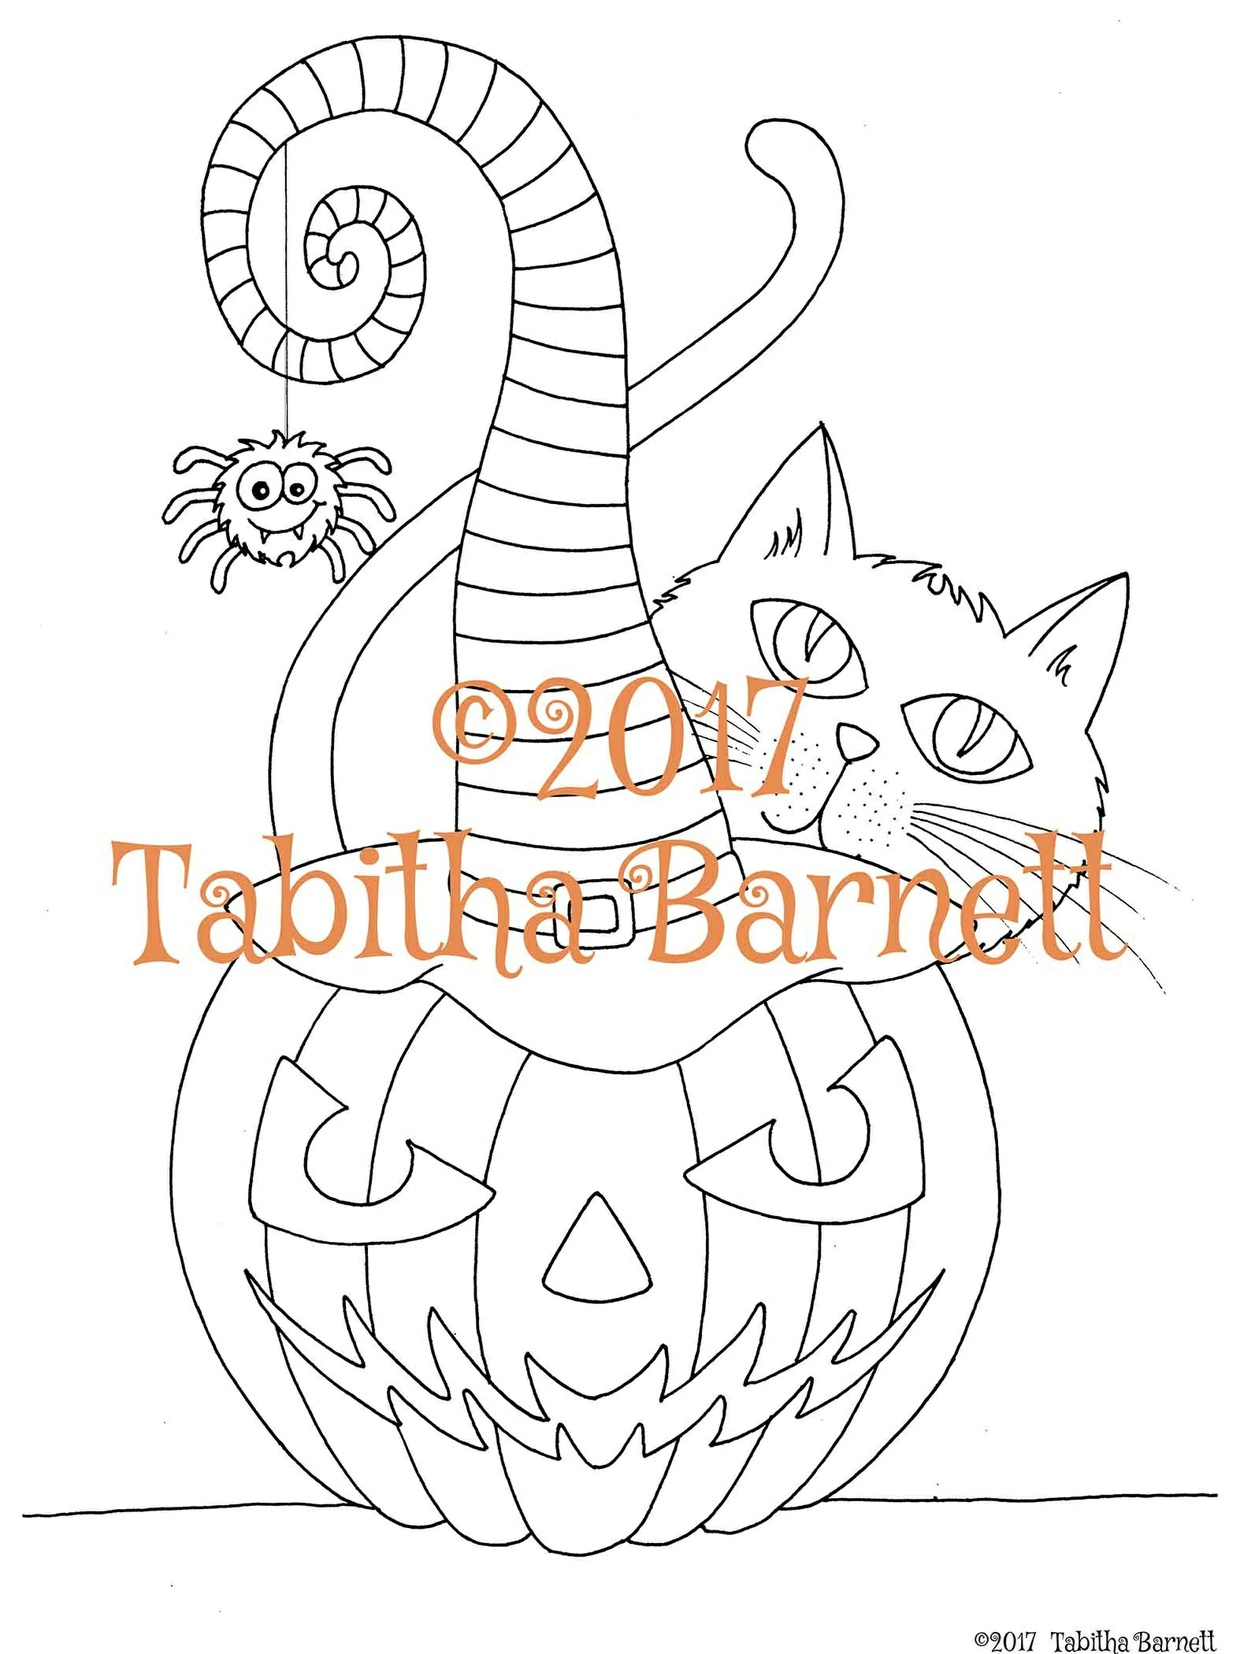 Witchy Coloring Pack (3 new pages for Halloween 2017)